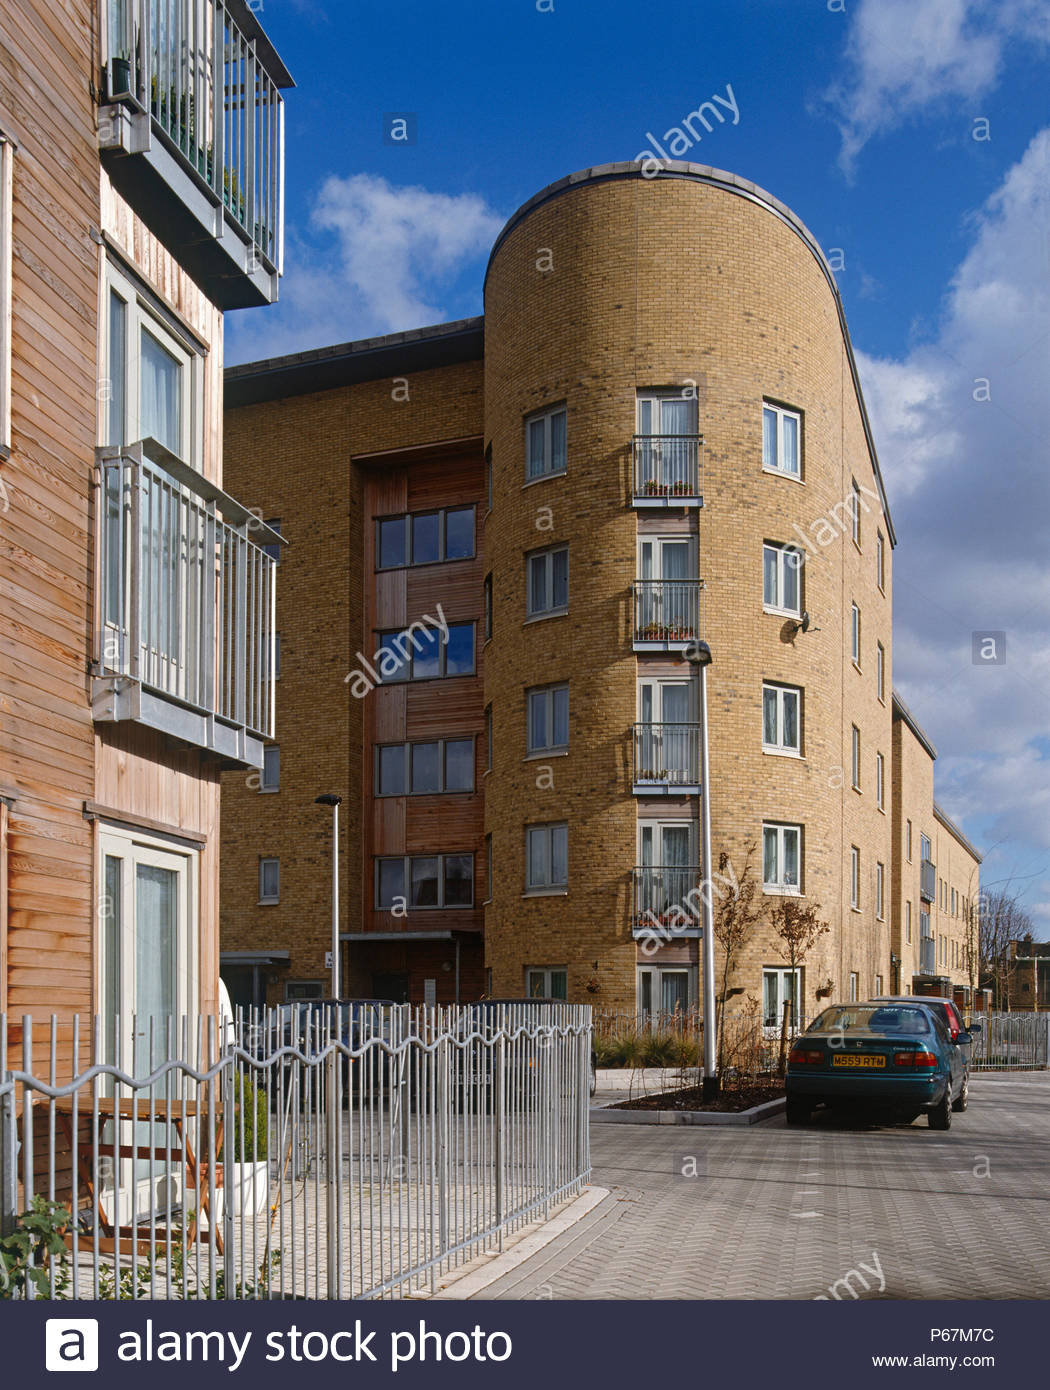 Kender Estate, Lewisham, London. The first phase of new homes for rent and shared ownership. The homes are being built to 'Lifetime Homes' standards a - Stock Image